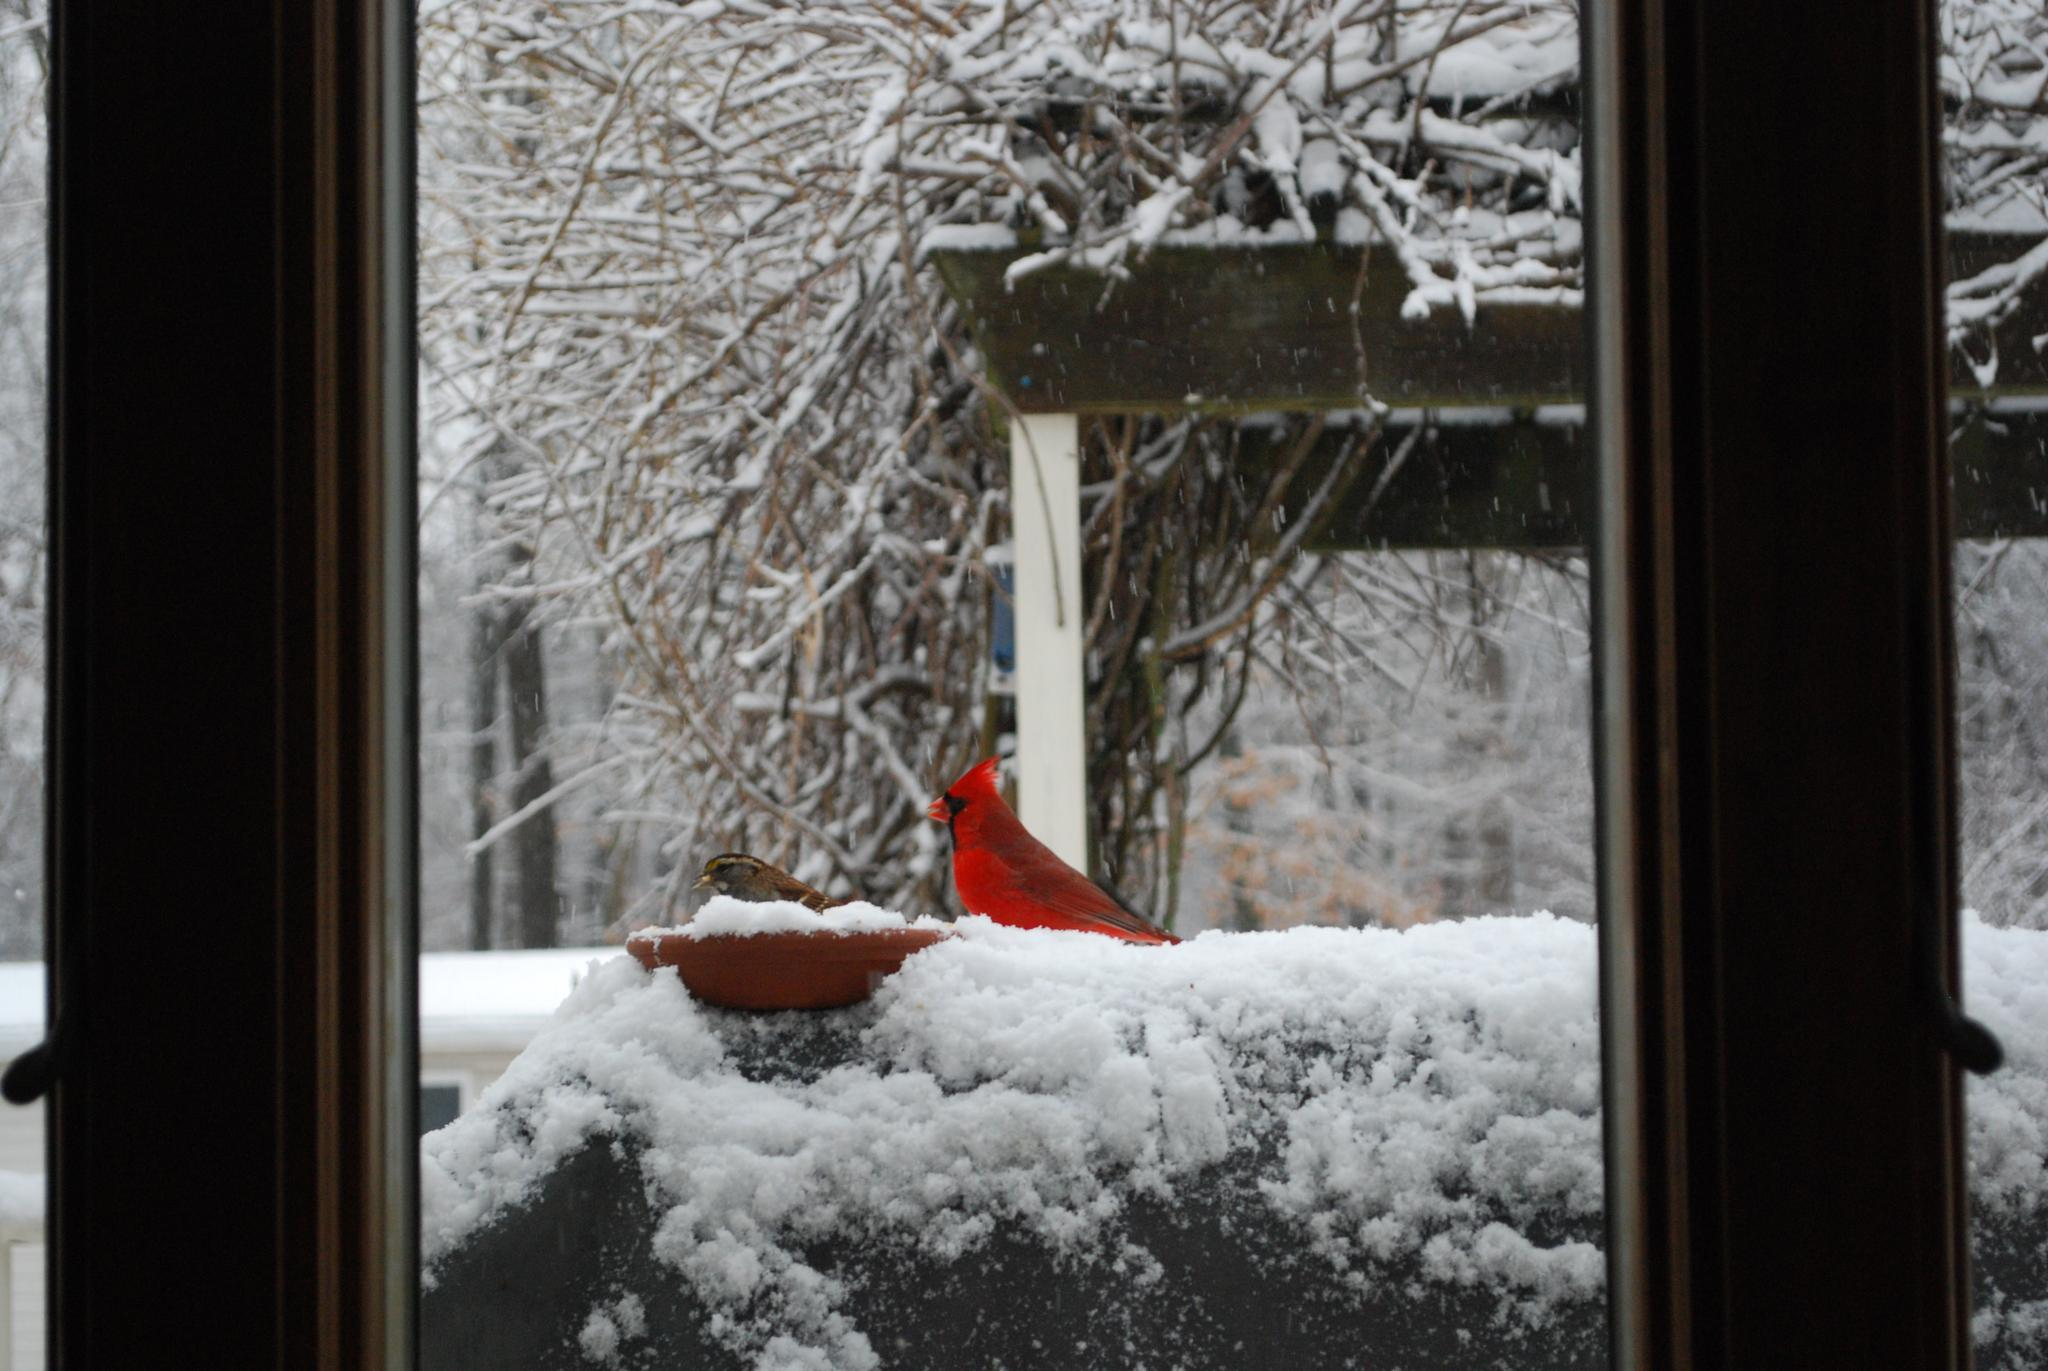 At the feeder during the snow storm by kathi.britske